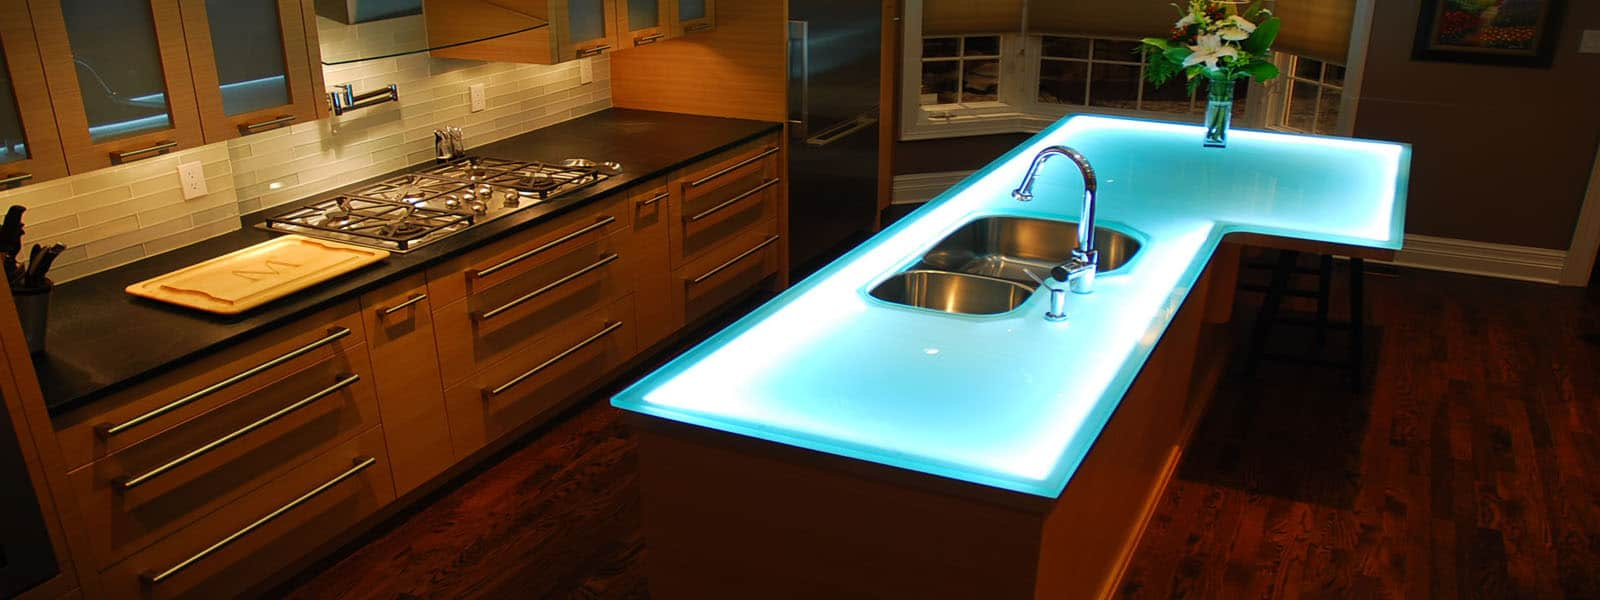 Modern Kitchen Countertops from Unusual Materials: 30 Ideas on teal tile kitchen, teal paint kitchen, teal wallpaper kitchen, teal backsplash kitchen, teal quartz countertops, teal floor kitchen,